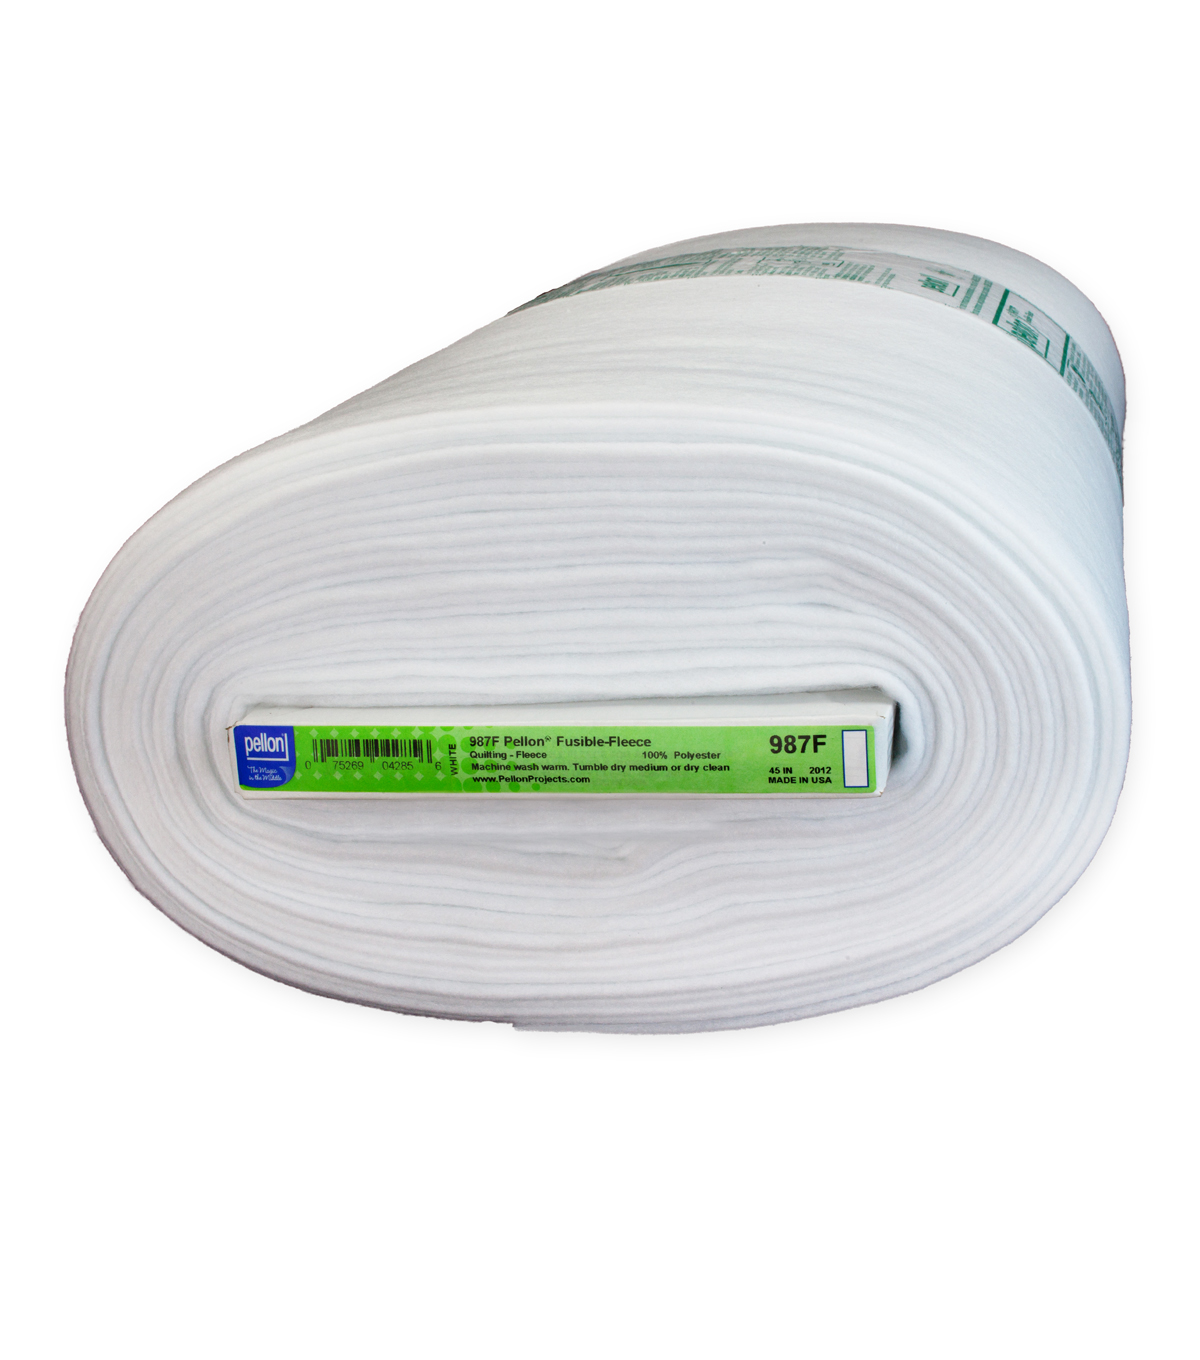 "Pellon 987FPKG Fusible Fleece-White 22/""X36/"""